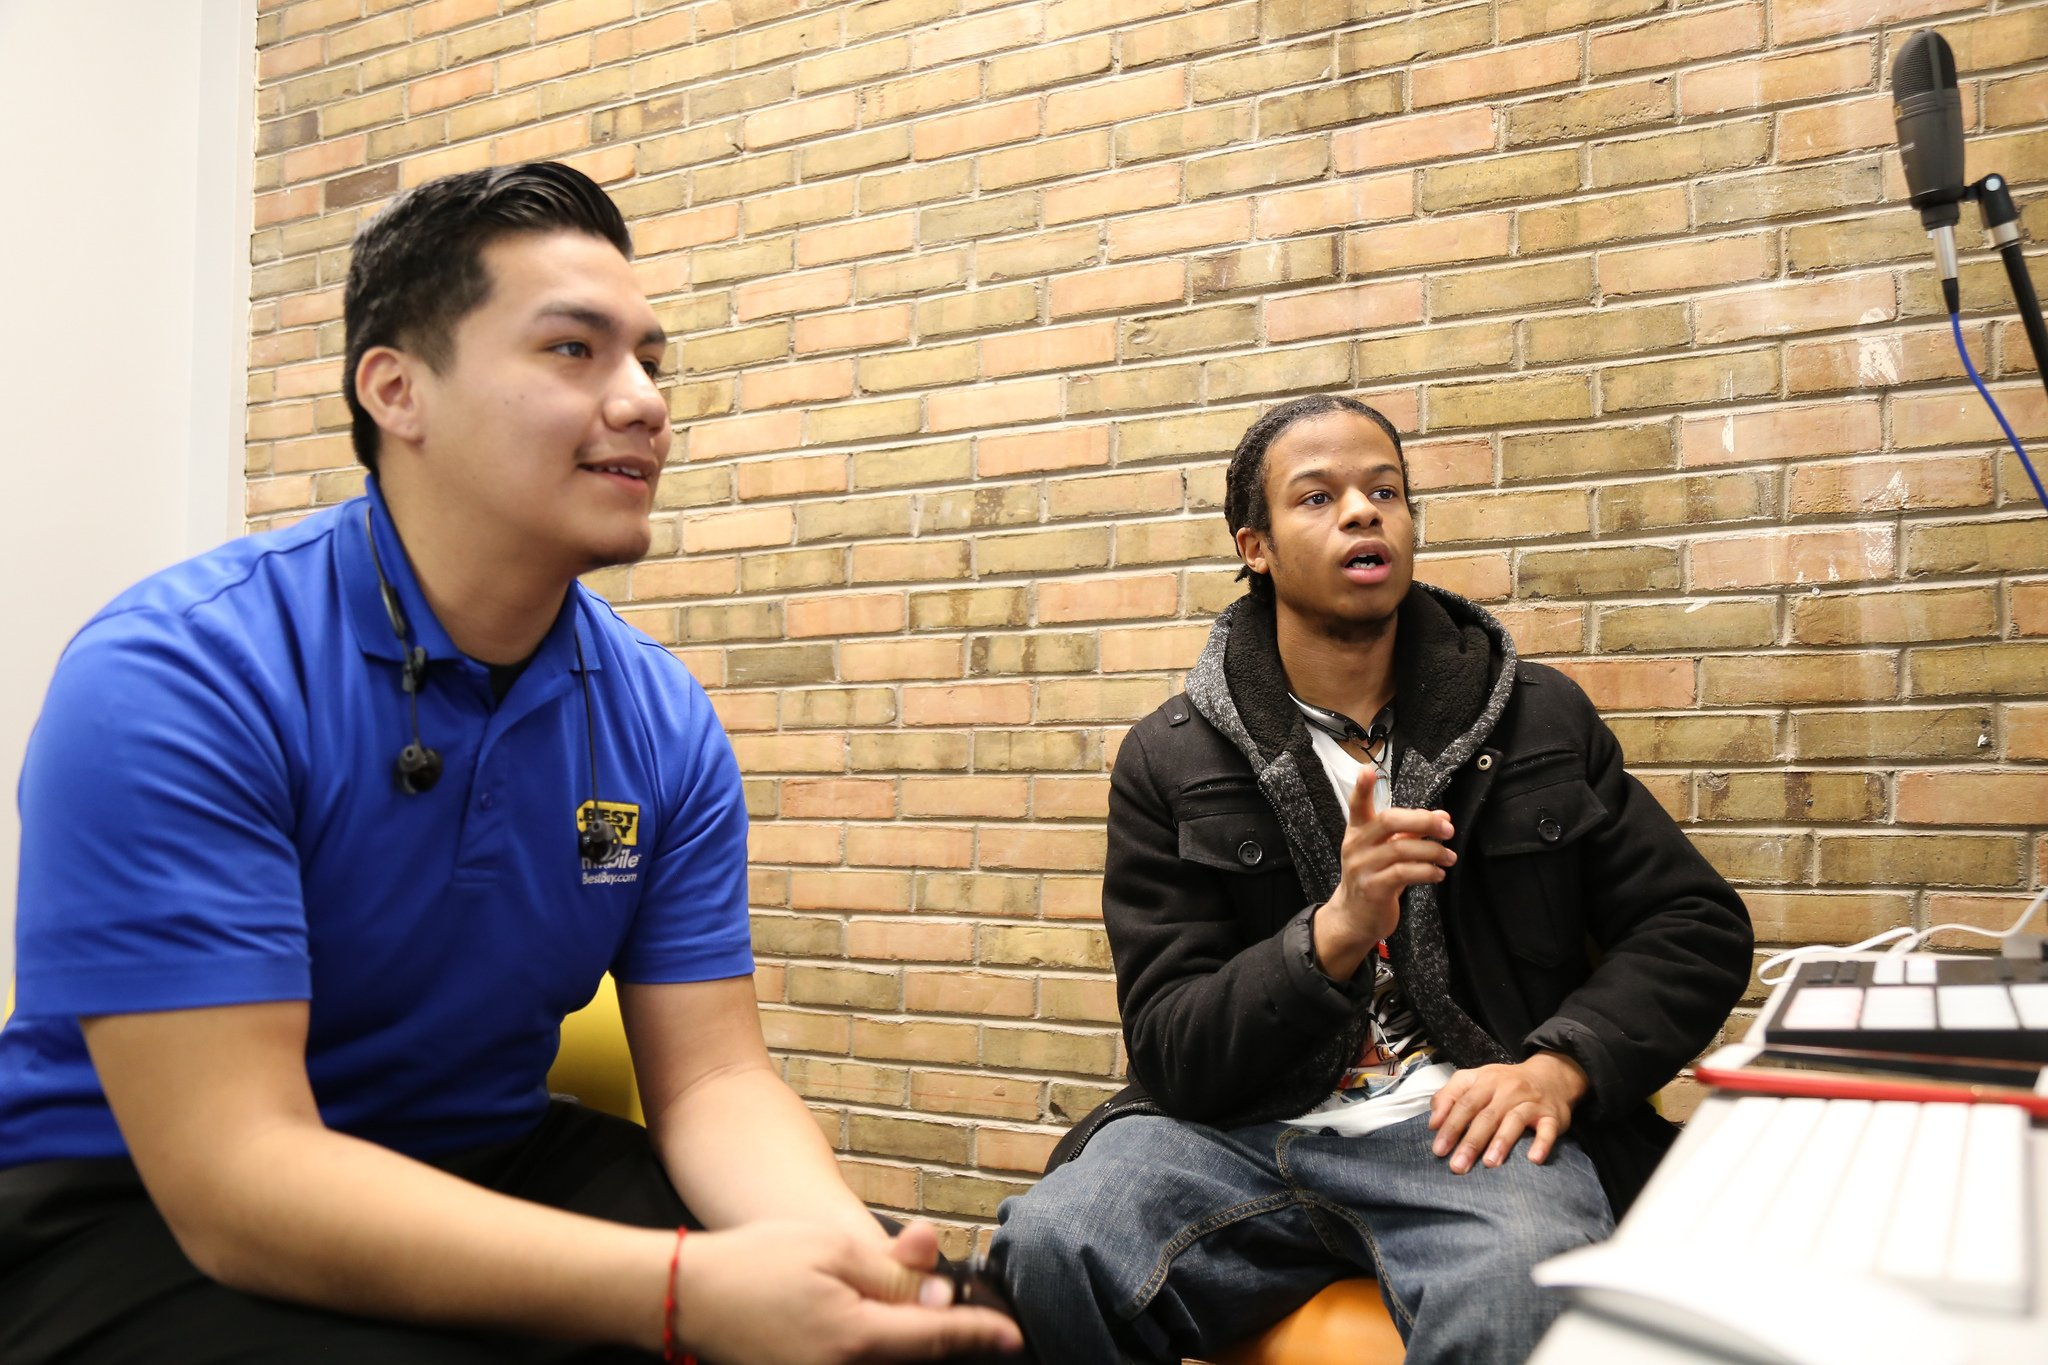 Two young men sit together at the Indianapolis Teen Tech Center